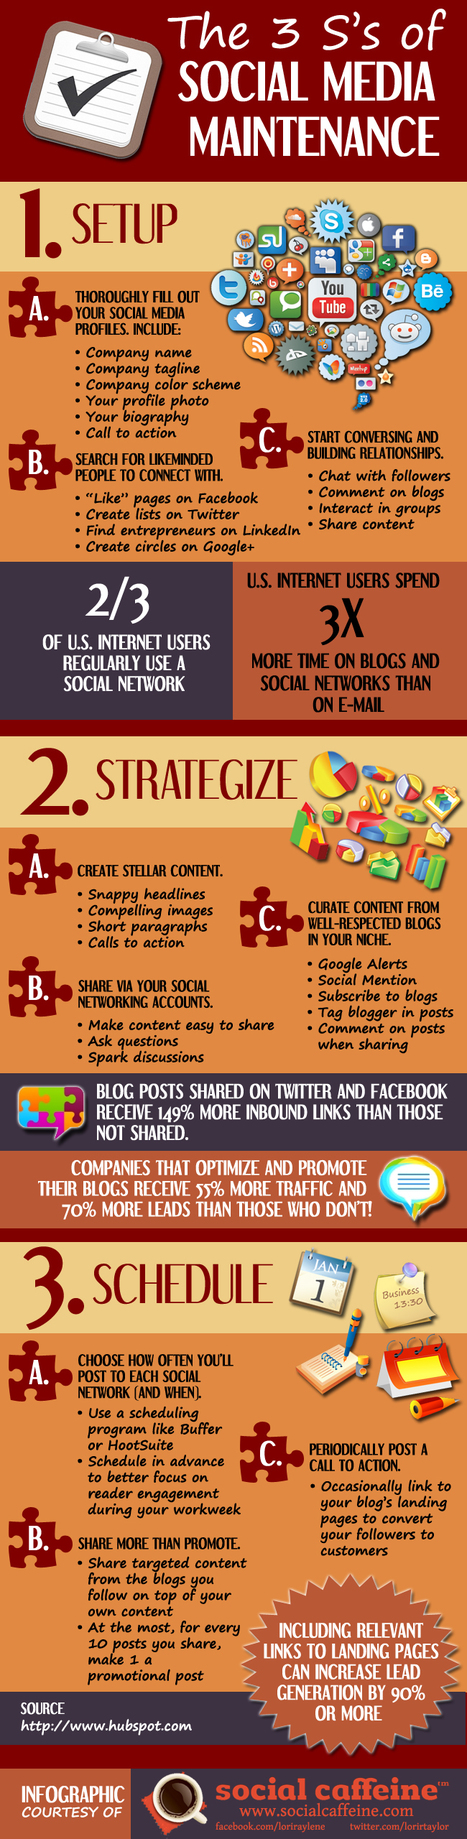 3 S's of Social Media: Setup, Strategize and Schedule [Infographic] | Better know and better use Social Media today (facebook, twitter...) | Scoop.it